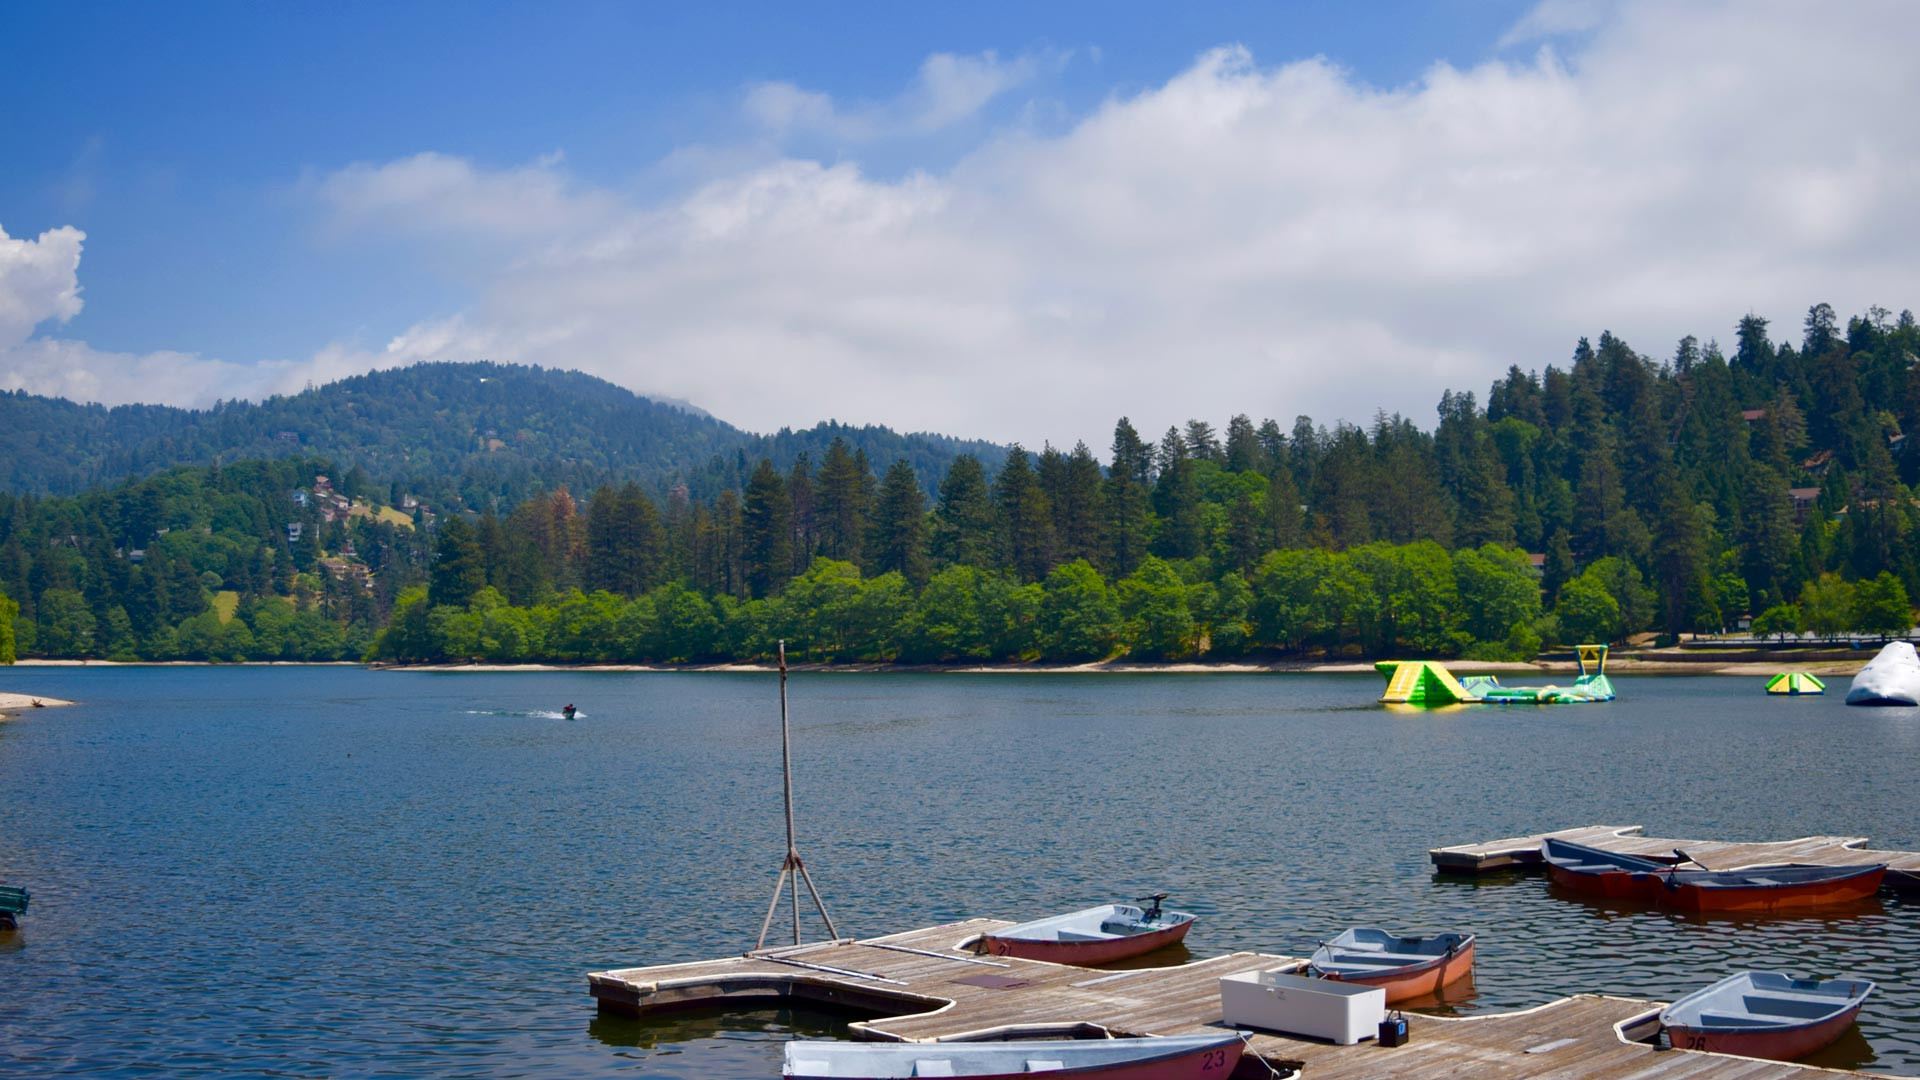 Lake Gregory The Hidden Gem of the San Bernardino Mountains